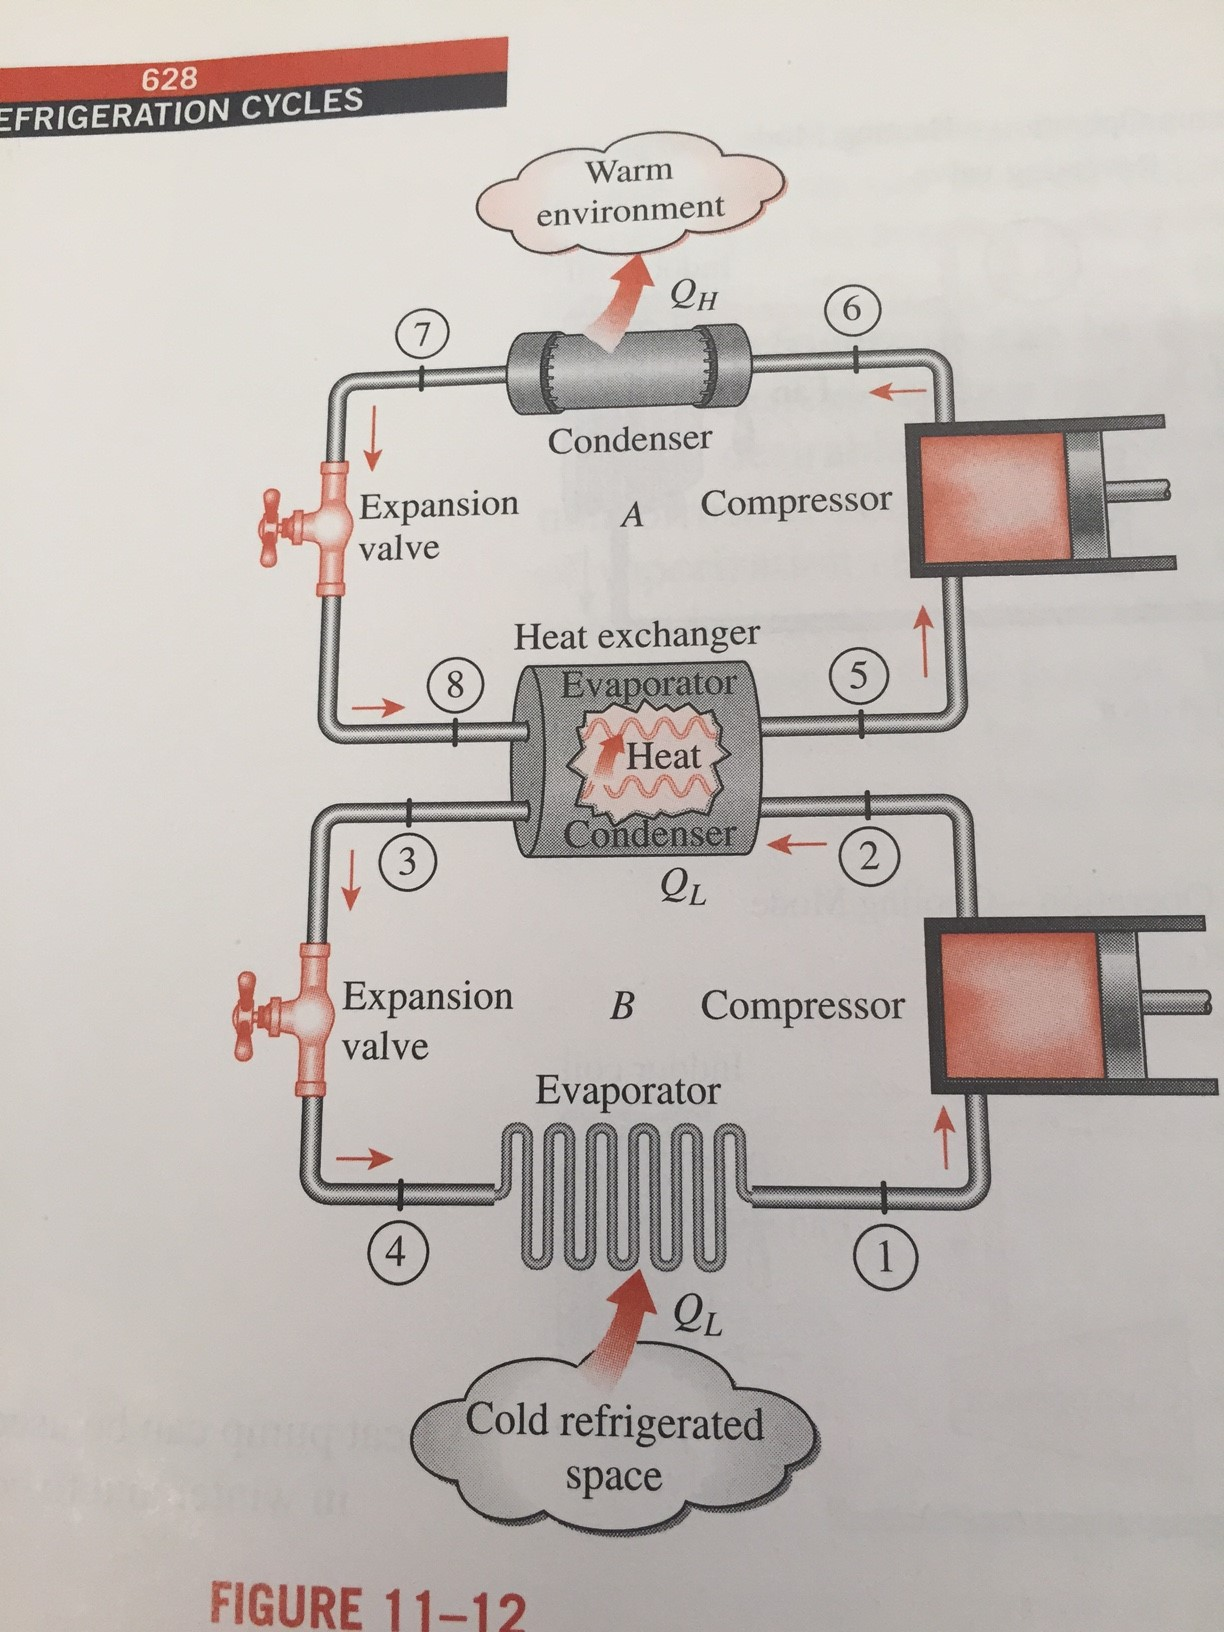 Consider a two stage cascade refrigeration system chegg consider a two stage cascade refrigeration system pooptronica